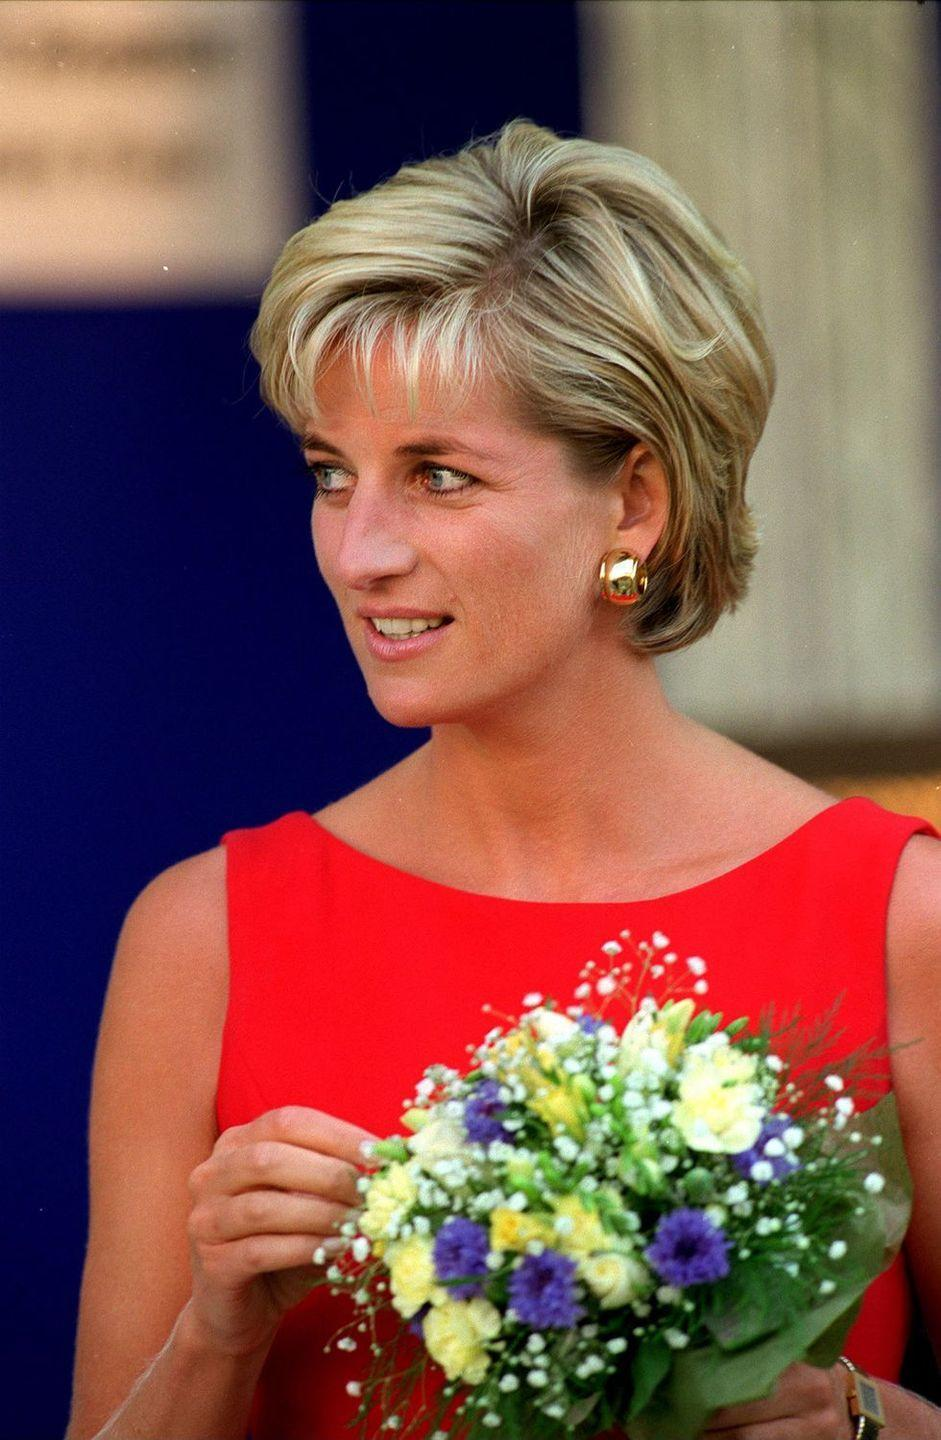 """<p>Princess Diana initially favored bold blue pencils to rim her eyes, but Greenwell steered her toward softer beige and brown <a href=""""https://www.goodhousekeeping.com/beauty-products/eyeliner-reviews/g5013/best-eyeliner-reviews/"""" rel=""""nofollow noopener"""" target=""""_blank"""" data-ylk=""""slk:eyeliners"""" class=""""link rapid-noclick-resp"""">eyeliners</a> after meeting her at a <em>Vogue </em>photoshoot in 1991. """"The thing that I changed most about Princess Diana's look was actually moving away from the blue liner, which was very aging for her,"""" <a href=""""http://www.dailymail.co.uk/femail/article-4243454/Diana-s-make-artist-Mary-Greenwell-recreates-look.html"""" rel=""""nofollow noopener"""" target=""""_blank"""" data-ylk=""""slk:Greenwell"""" class=""""link rapid-noclick-resp"""">Greenwell</a> said. </p>"""